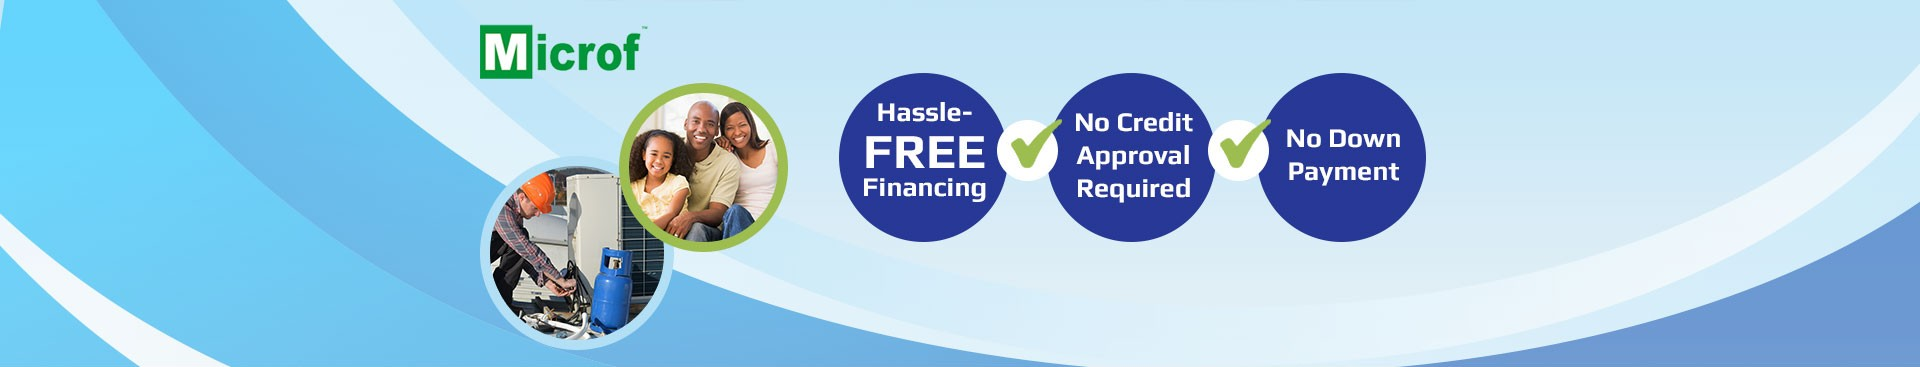 Microf hassle free financing